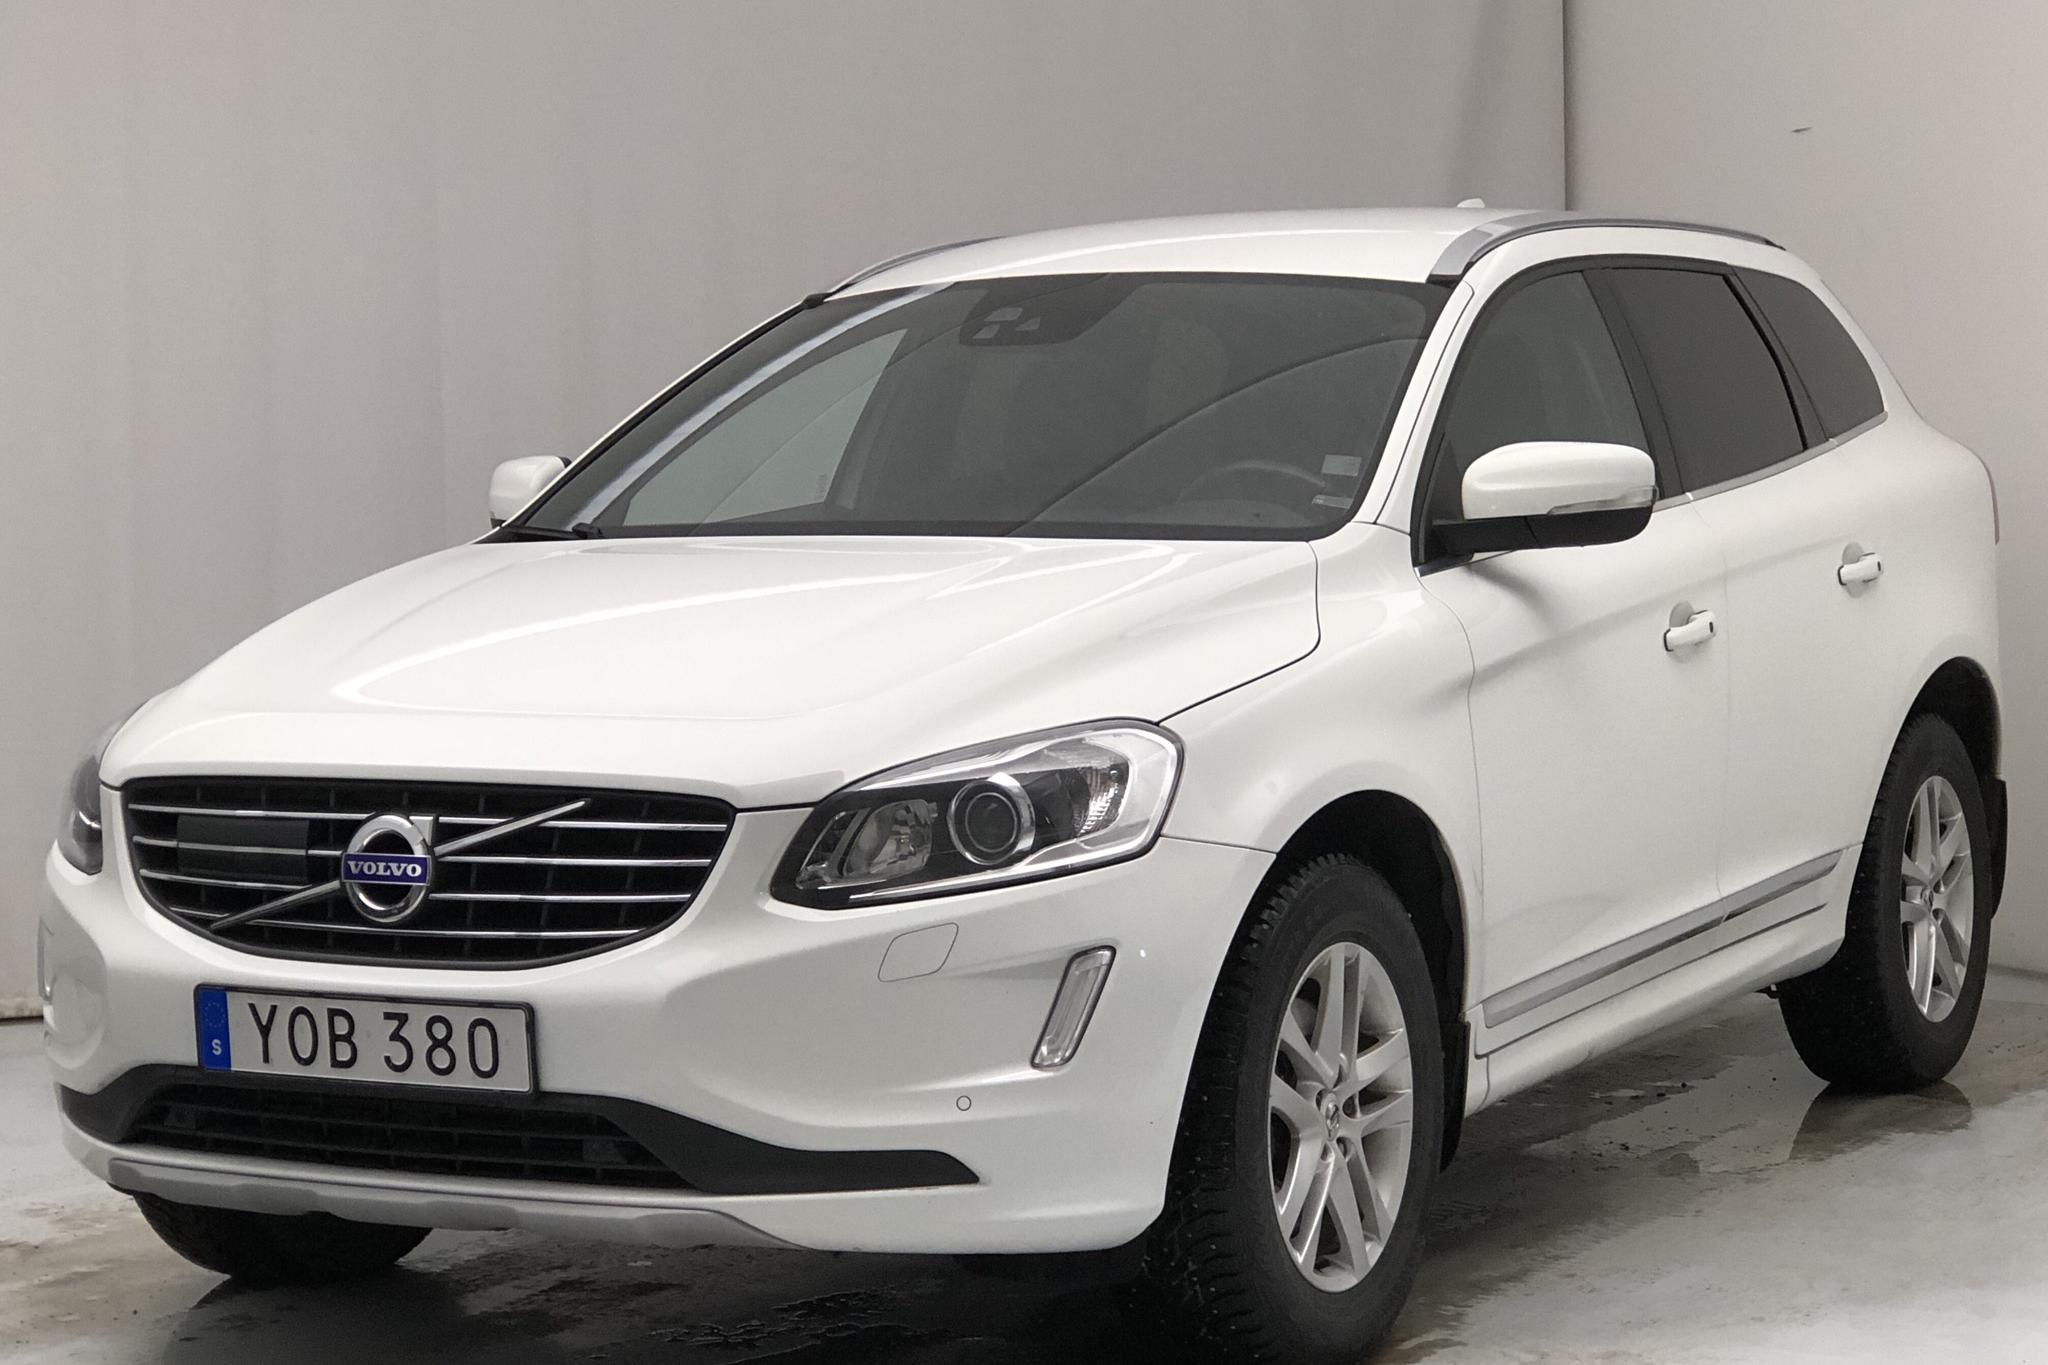 Volvo XC60 D4 AWD (190hk) - 106 850 km - Automatic - white - 2017